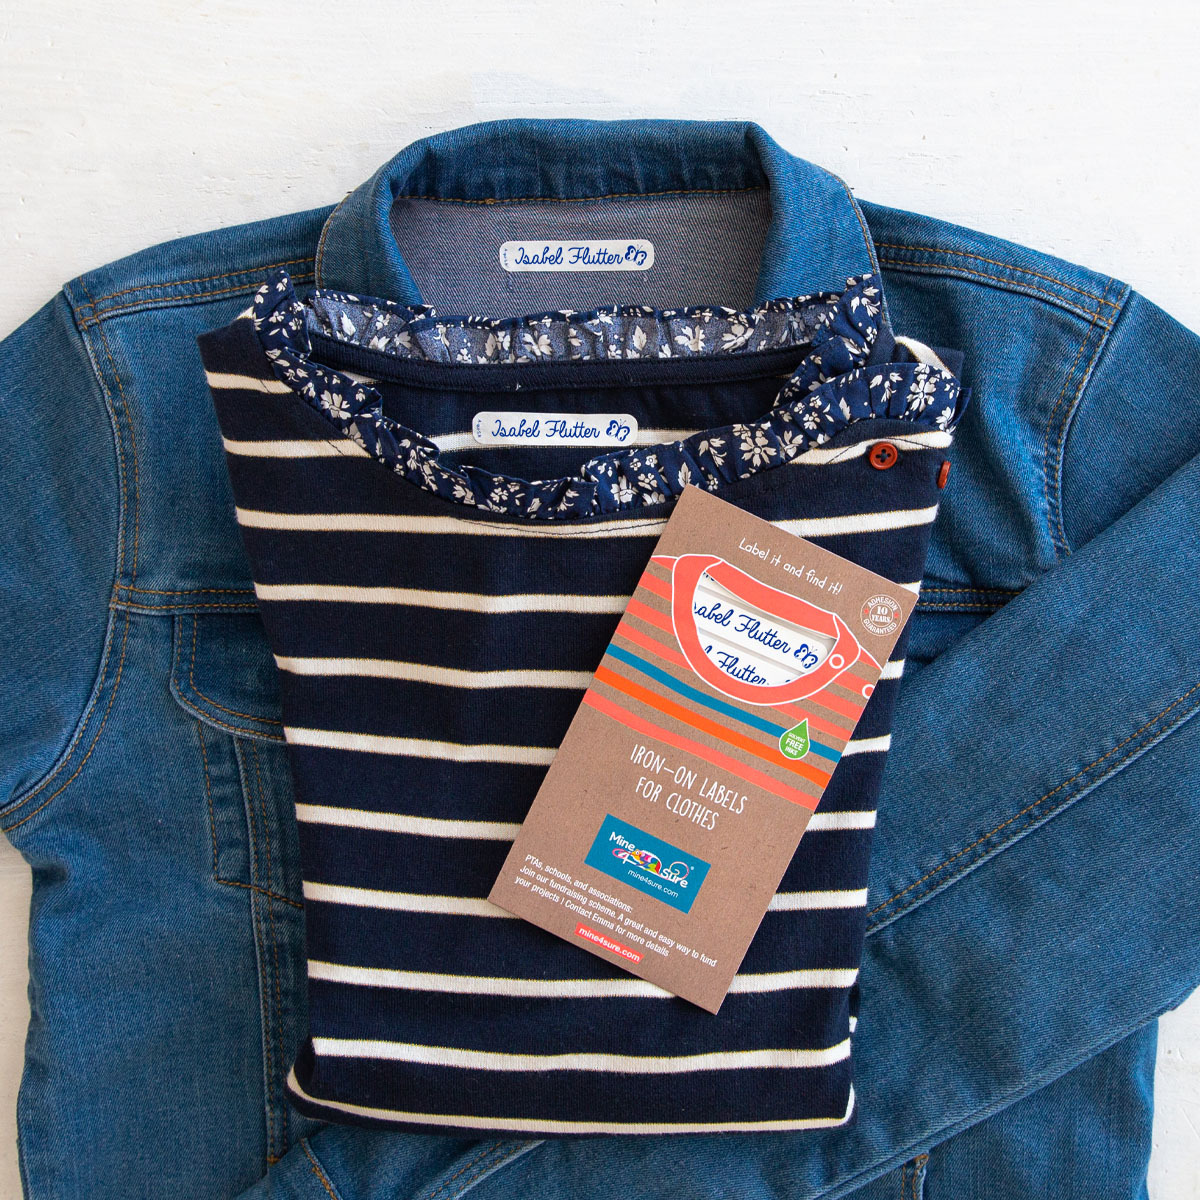 Iron on name labels: The easy solution to label all your clothes